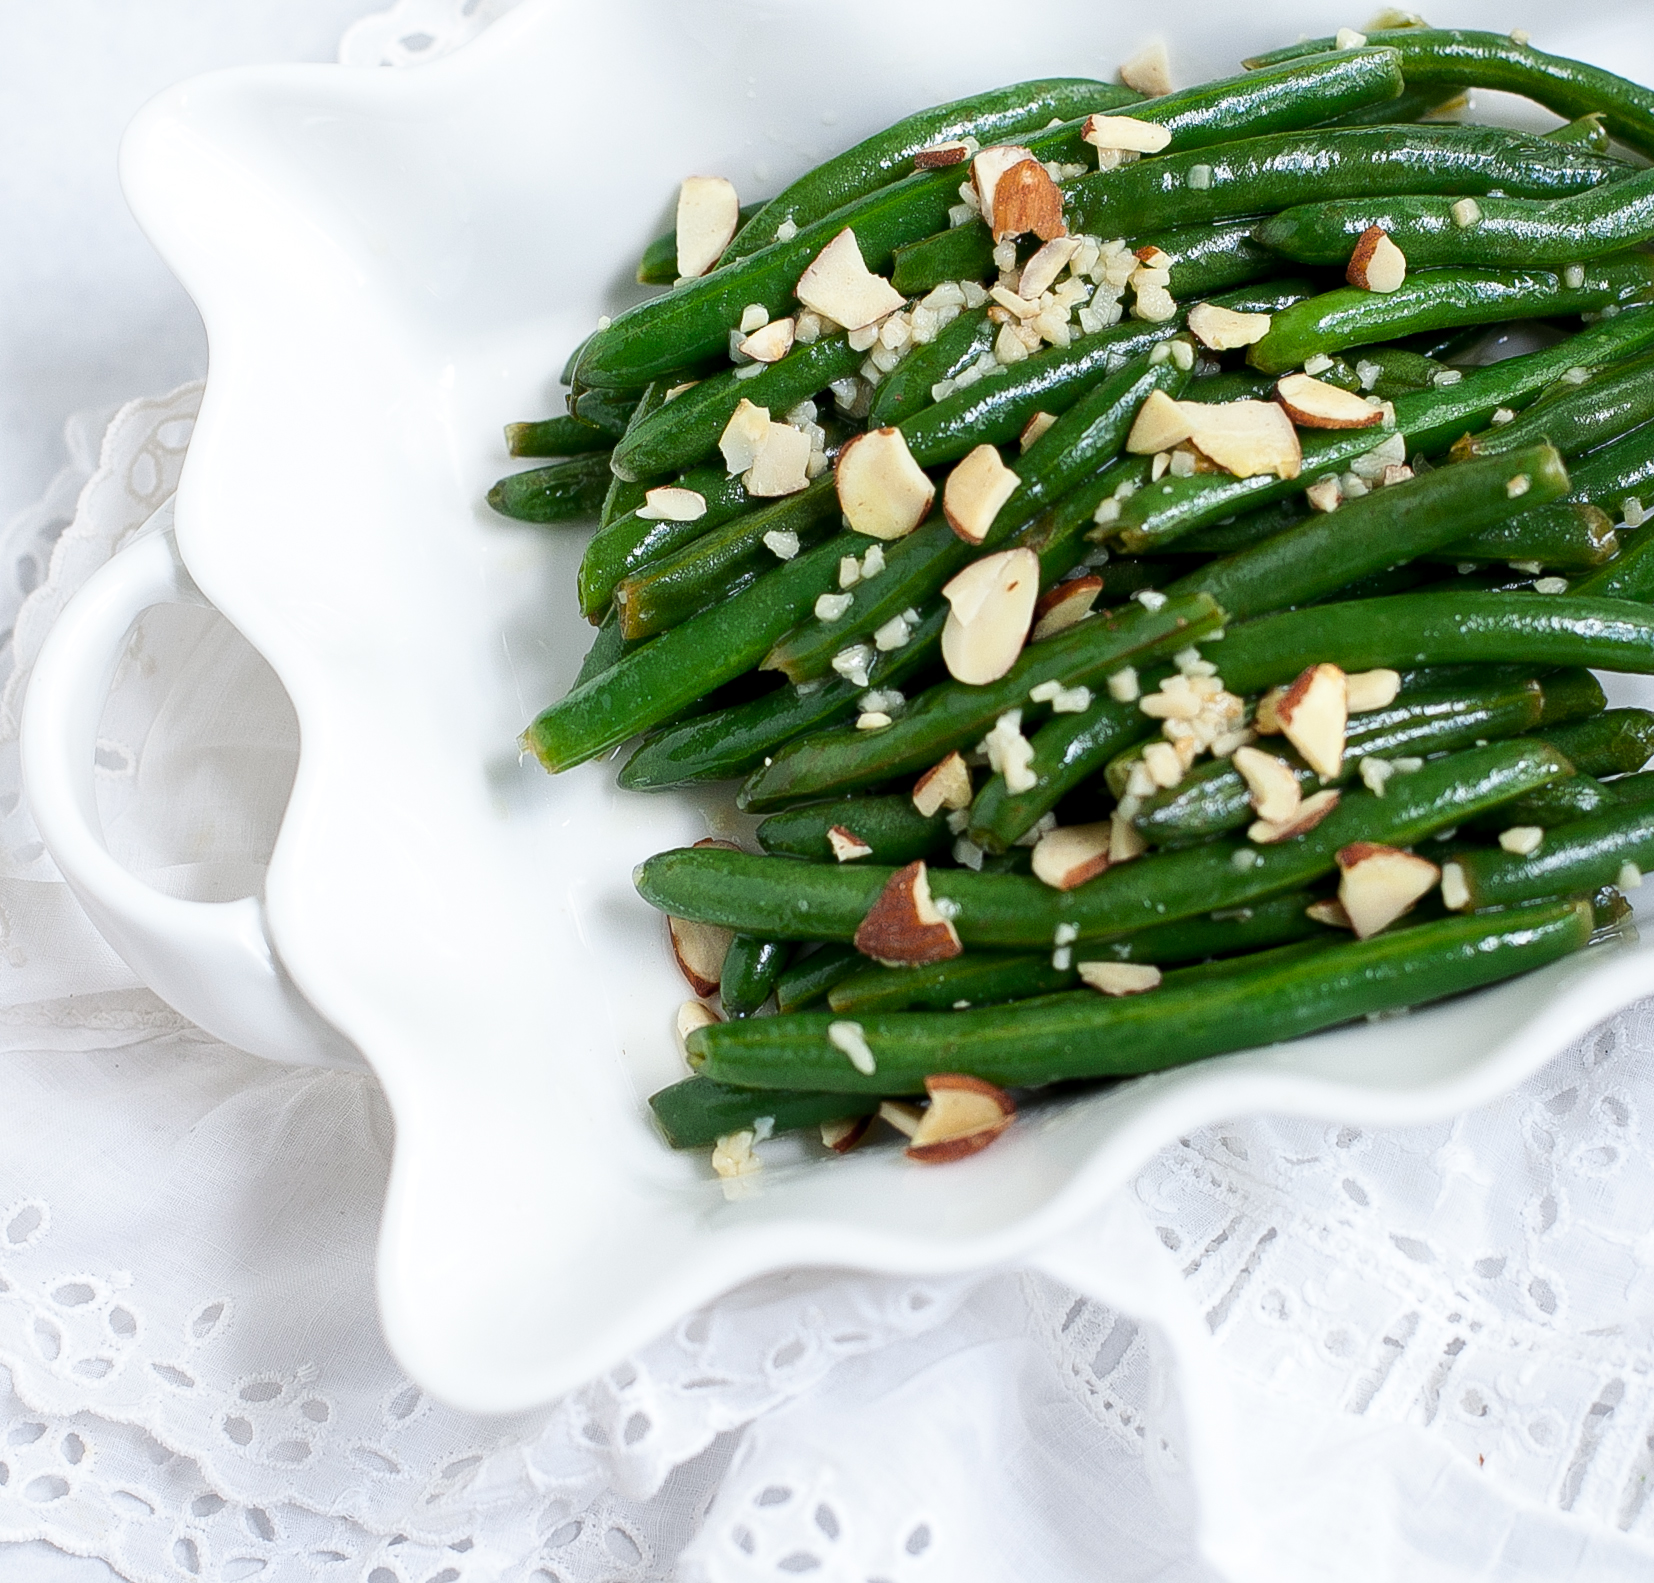 gluten-free holiday side - almond green beans